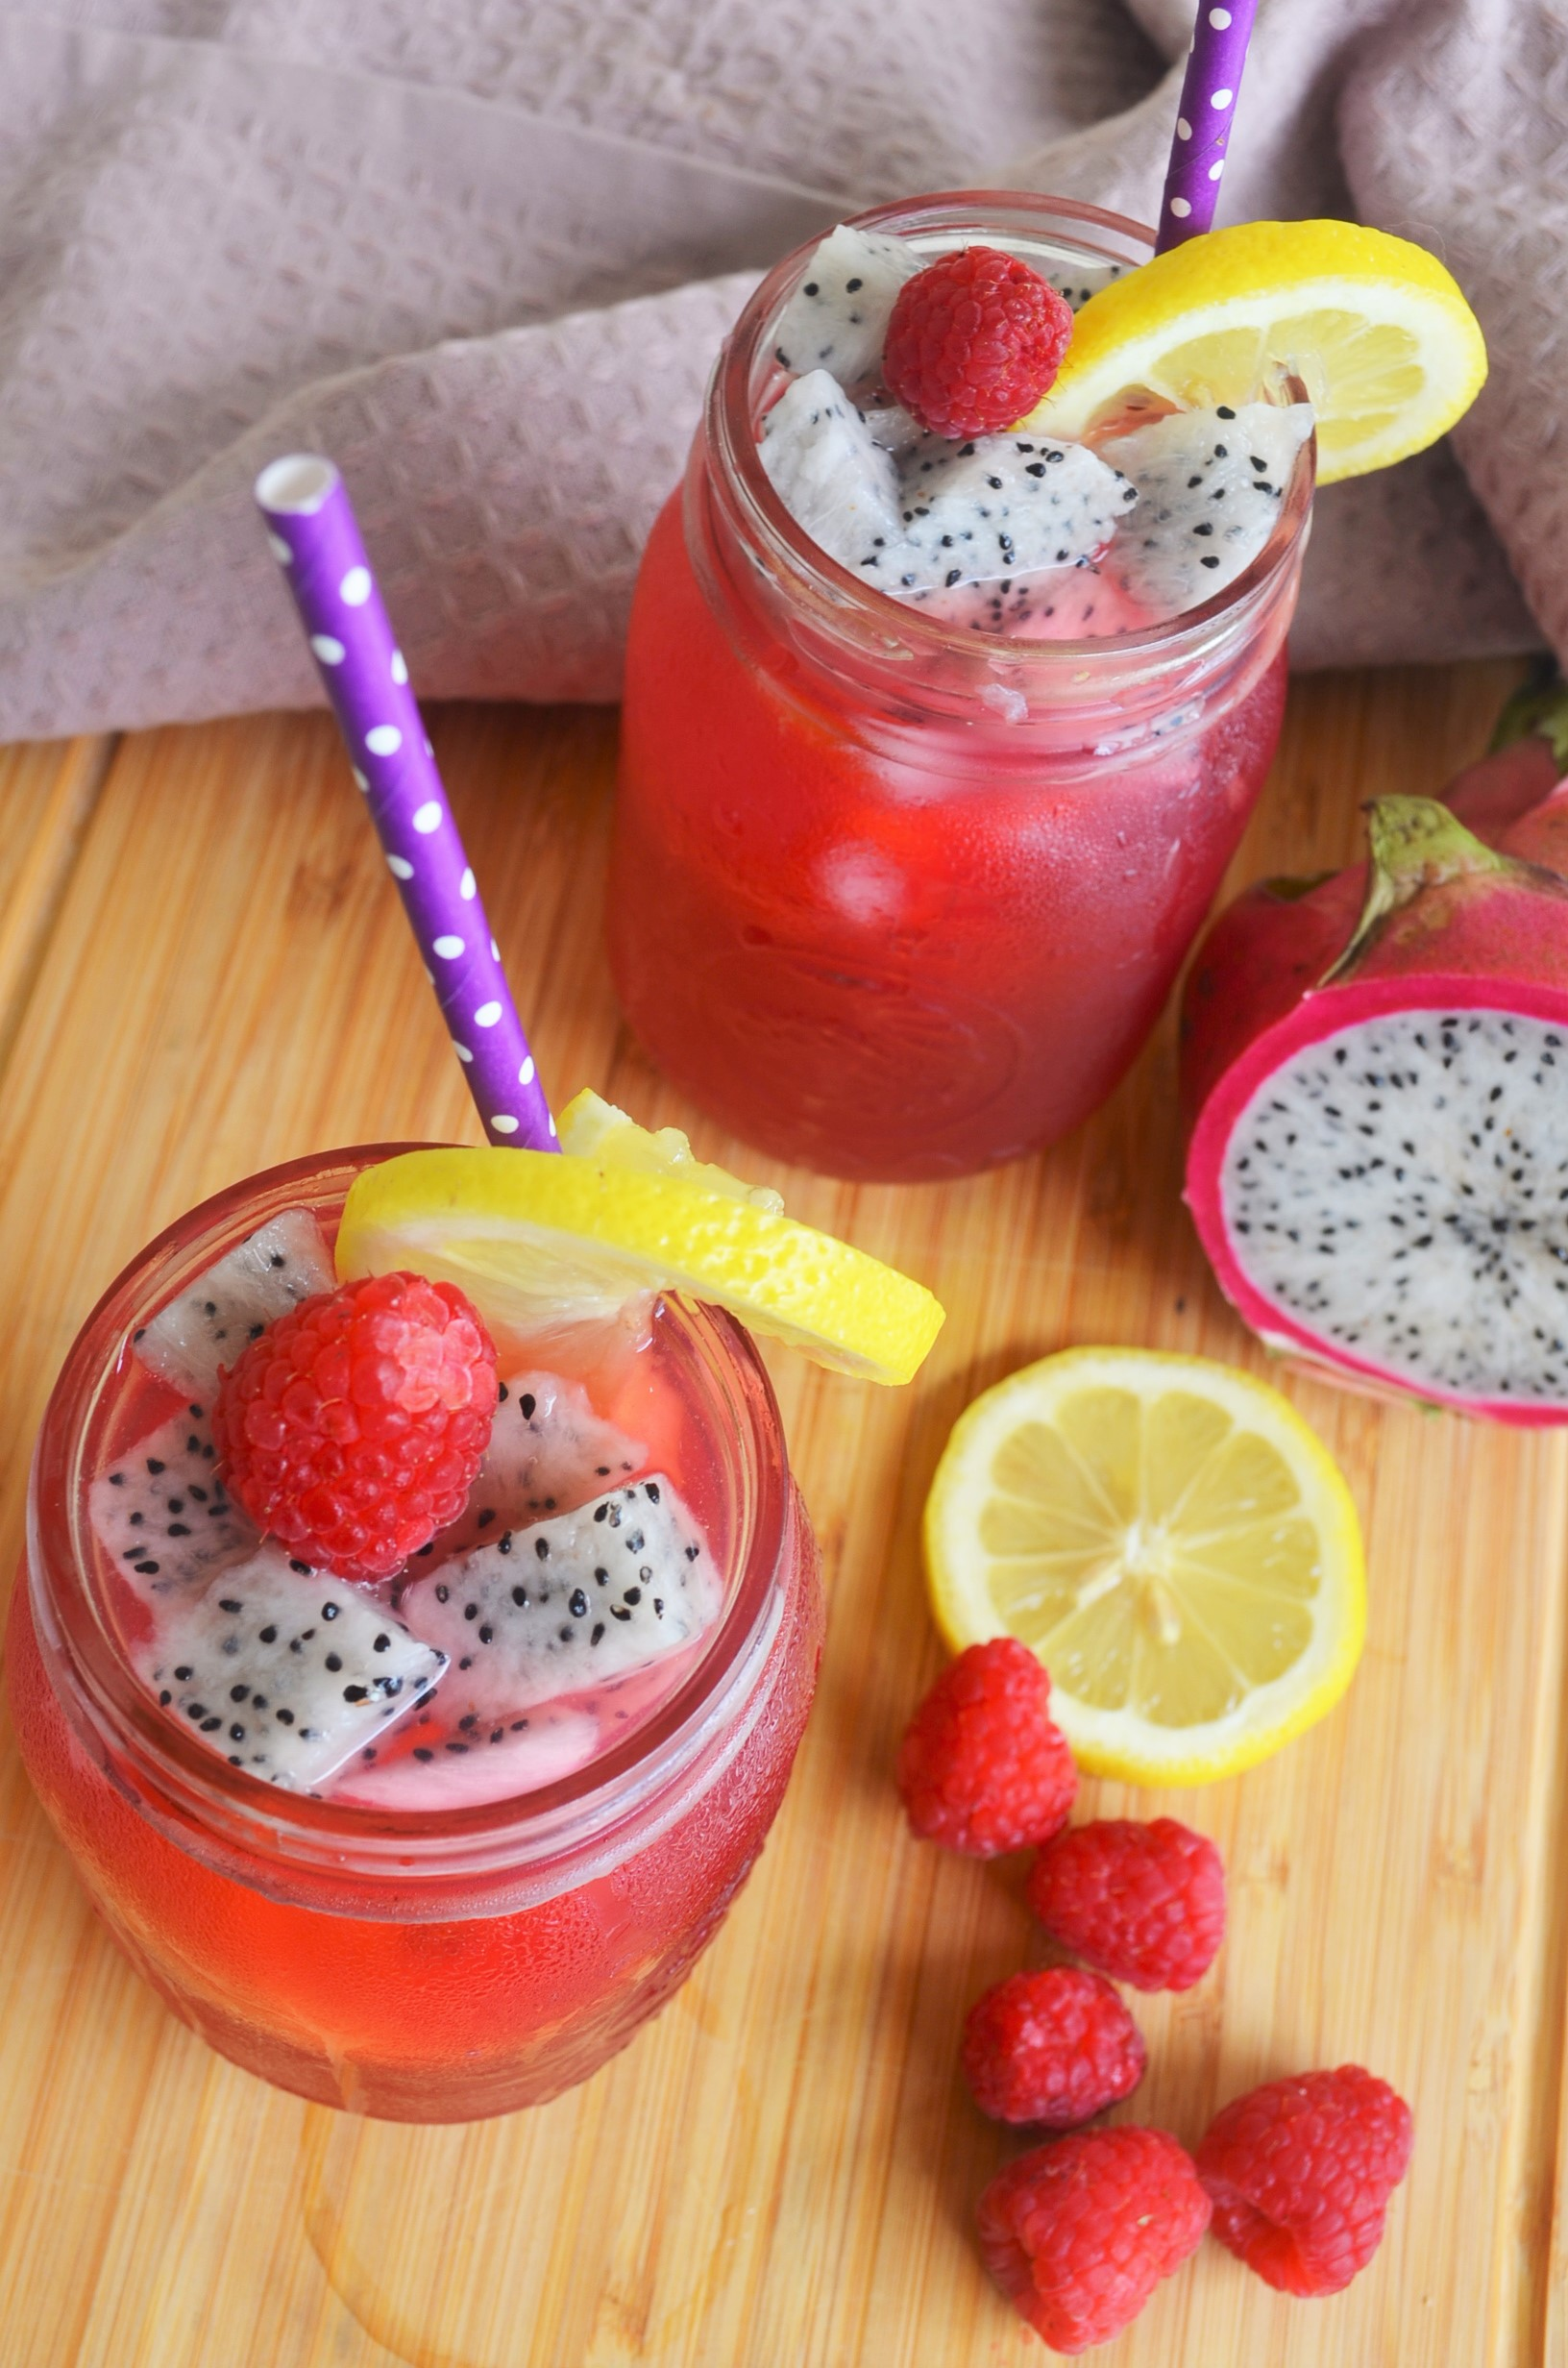 Raspberry and Dragin Fruit Lemonade